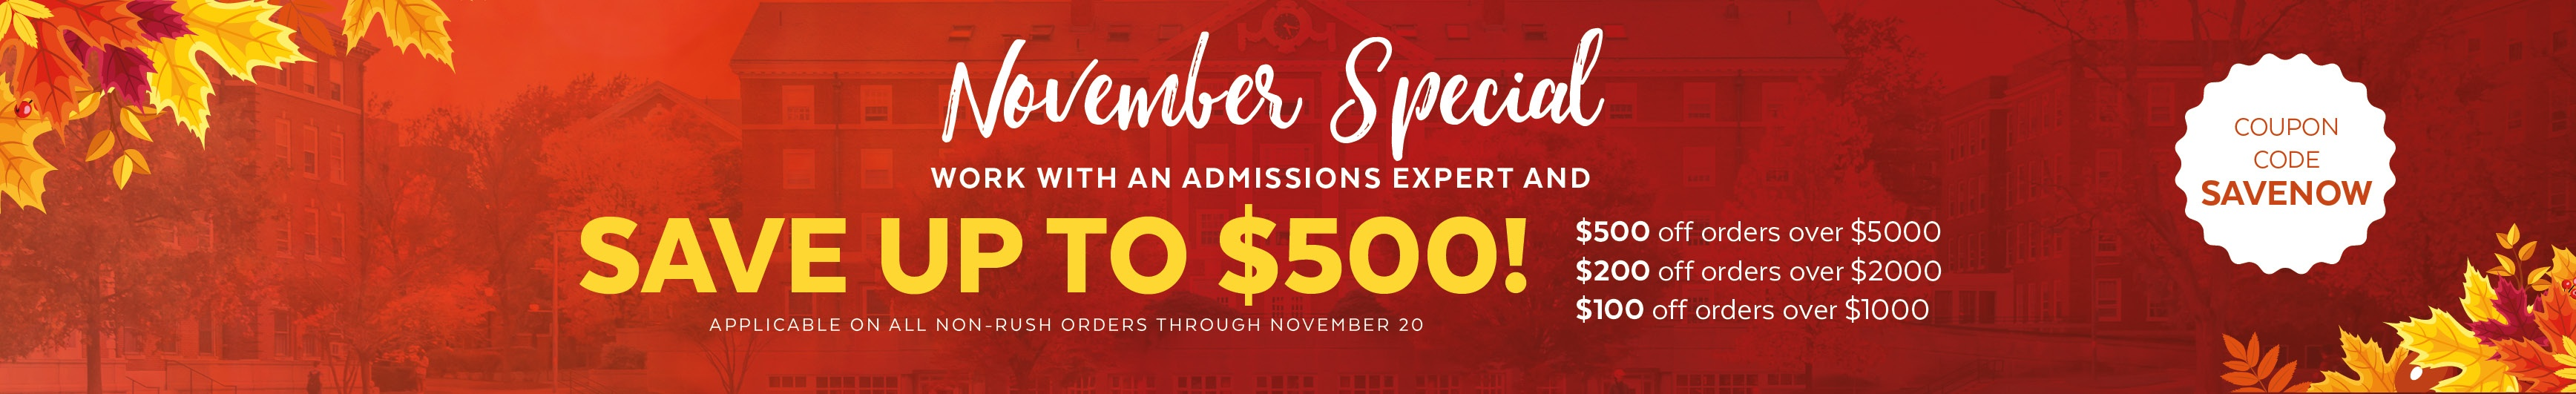 Save up to $500 on college admissions services! Shop now >>